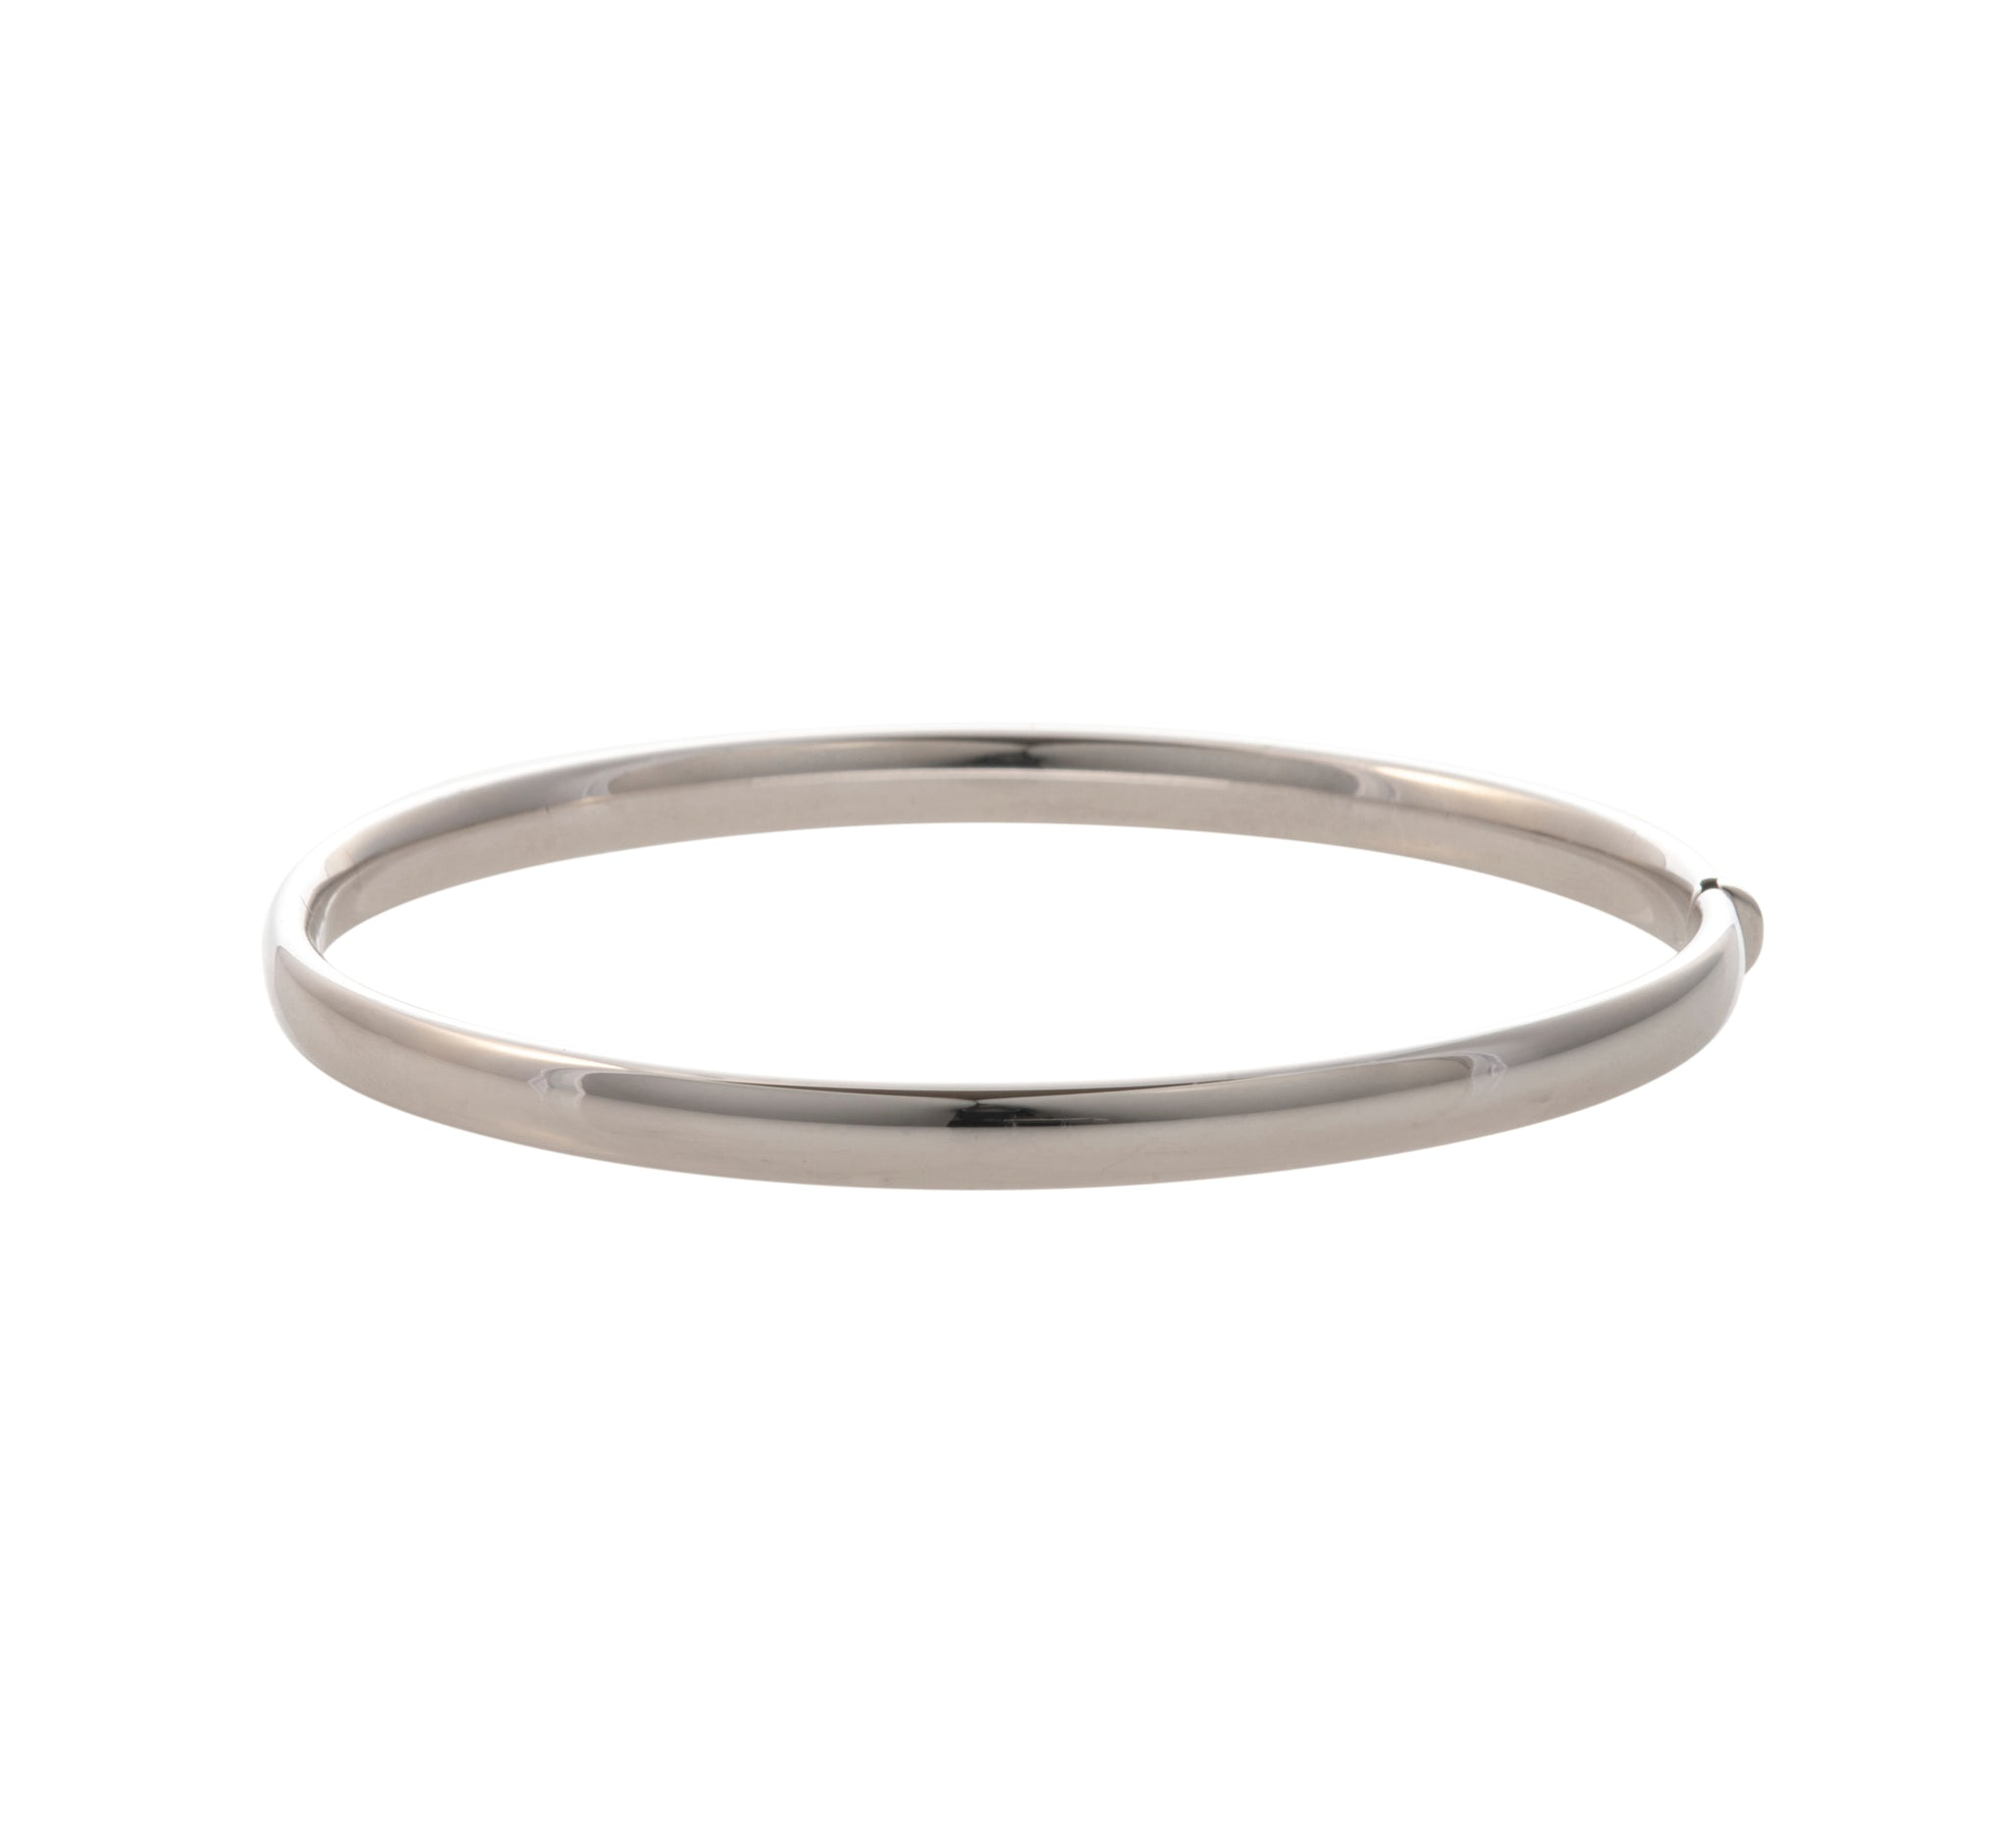 Italian 14K White Gold Bangle Bracelet